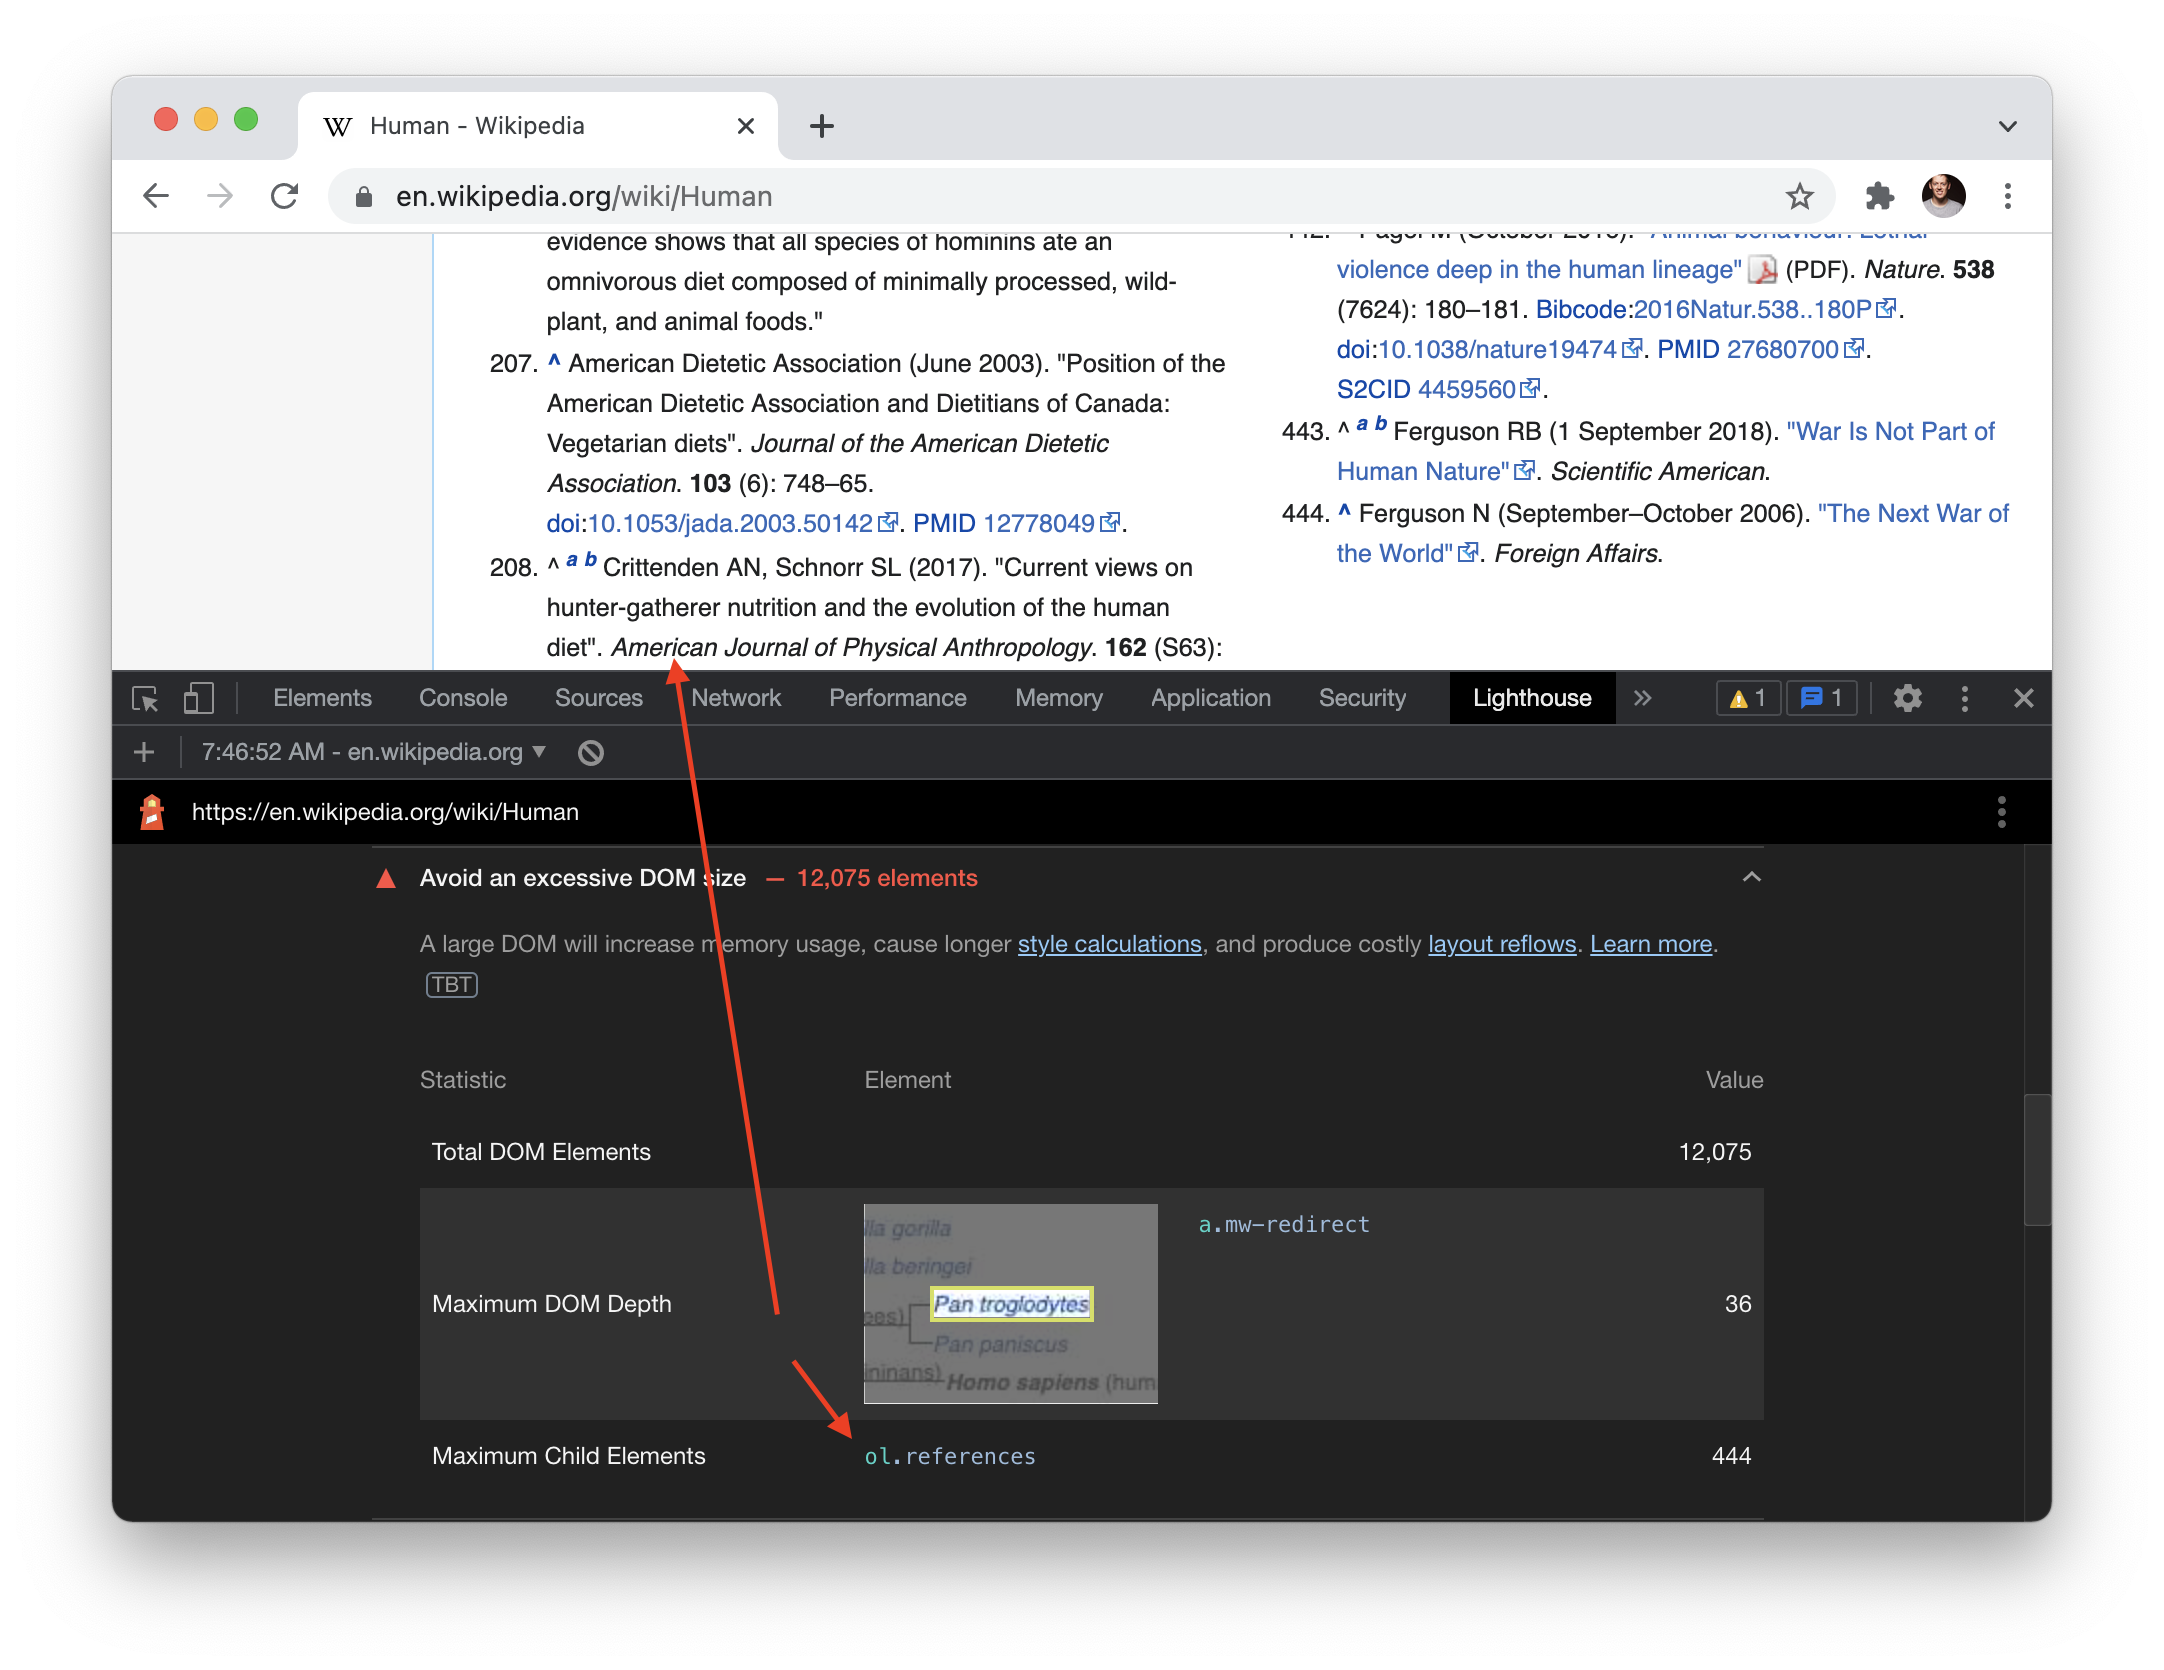 Screenshot of the Wikipedia entry for 'Human' with the Lighthouse dev tools open showing a warning about the number of DOM elements.